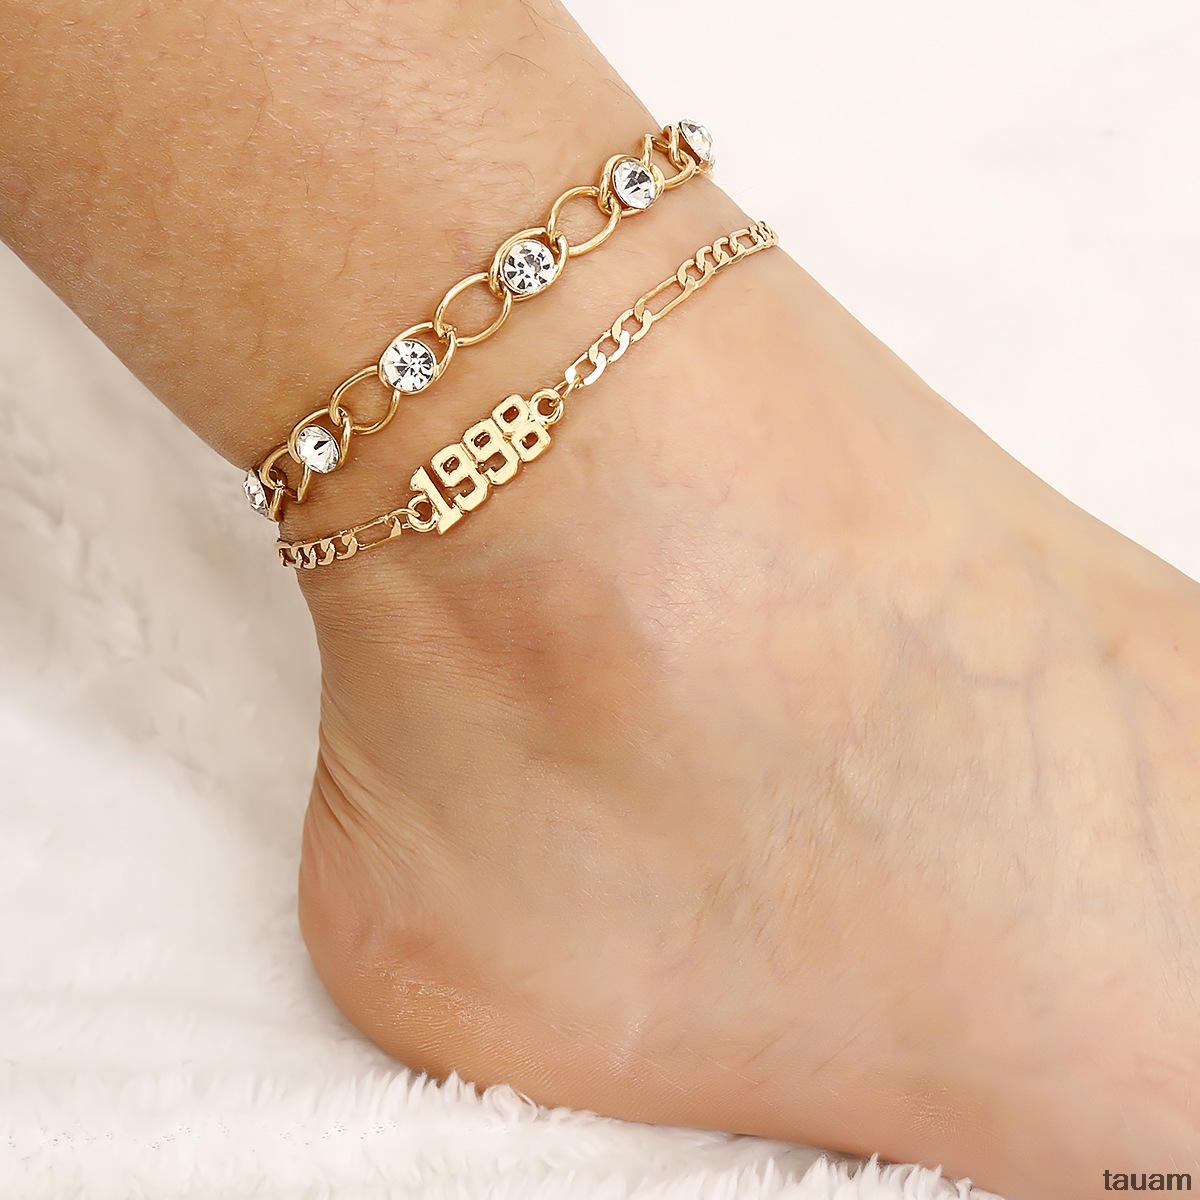 Women's Fashion CZ 1998 Birth Year Ankle Leg Bracelet Jewelry Gold Color Number Anklet Best Friend Gifts